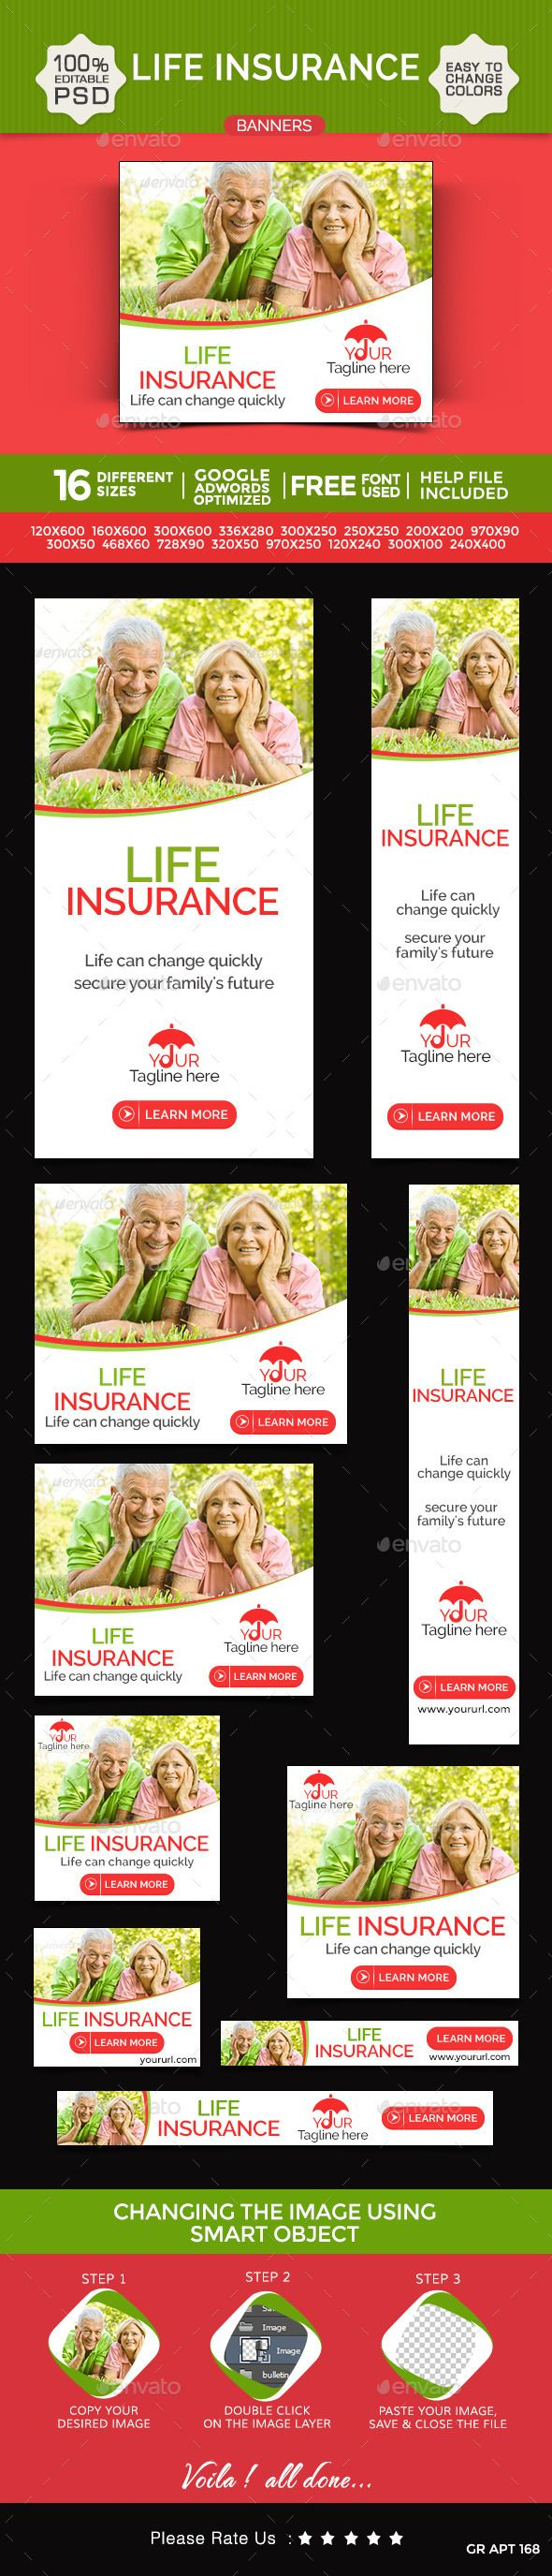 best images about life insurance ads on pinterest finance your life